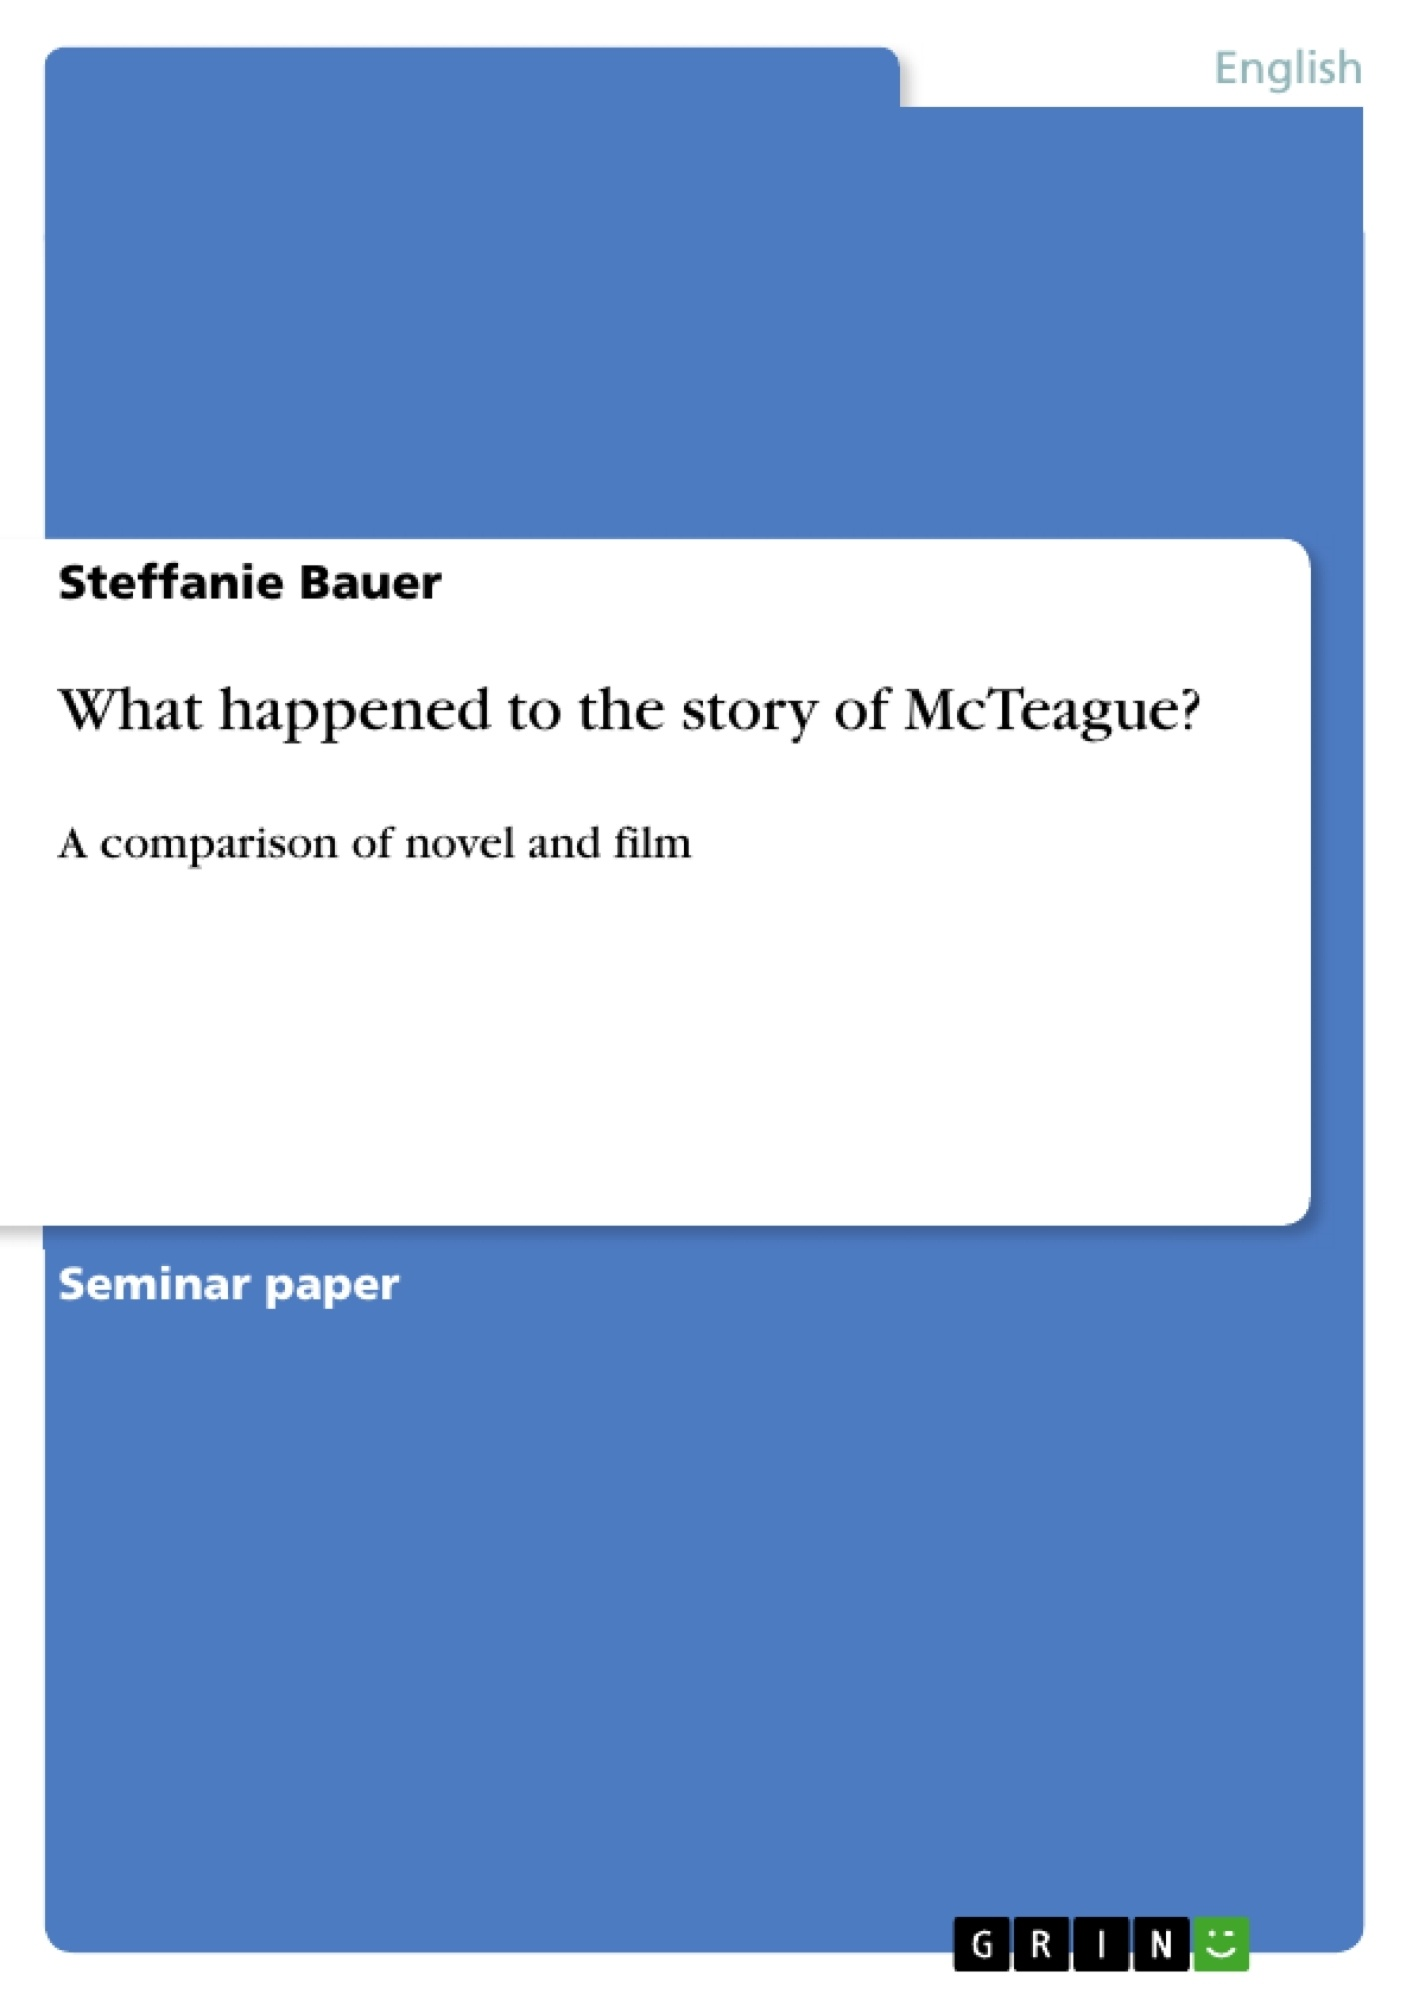 Title: What happened to the story of McTeague?